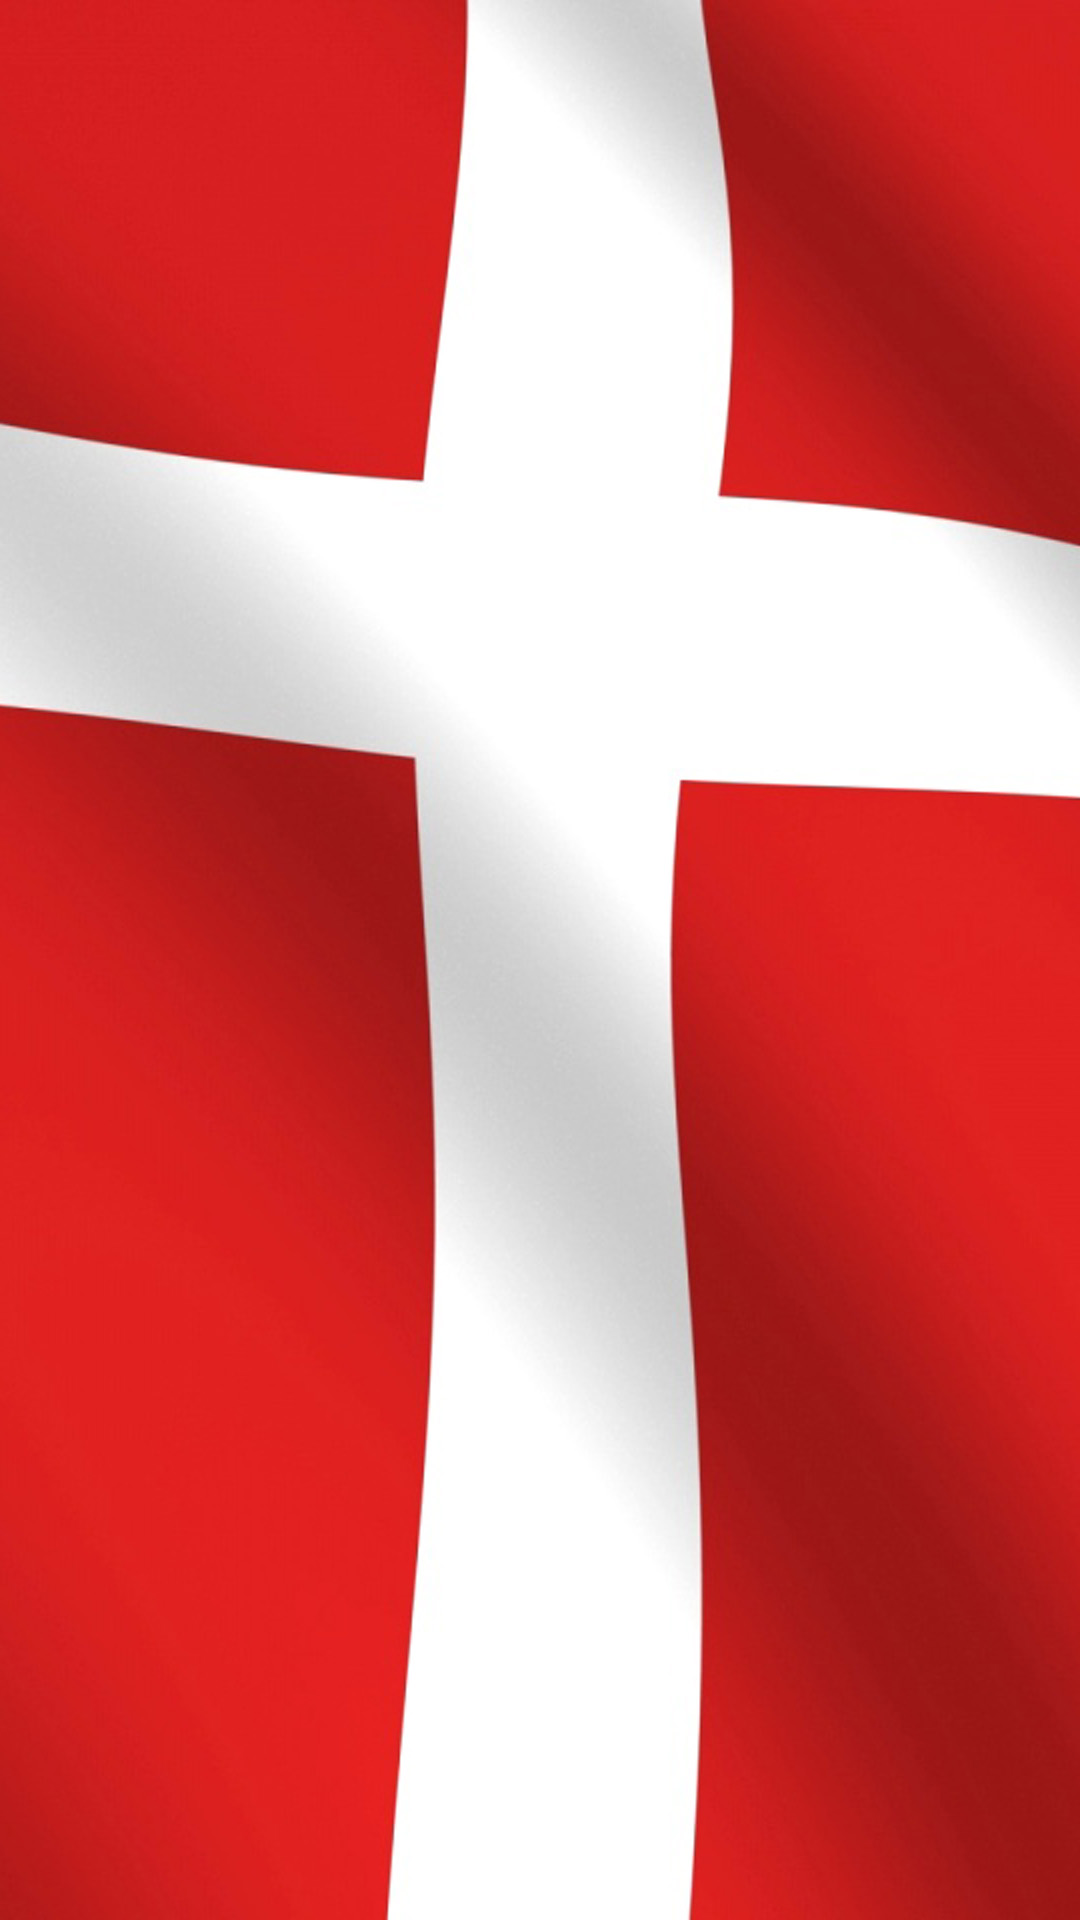 Denmark flag HD Wallpaper iPhone 6 plus   wallpapersmobilenet 1080x1920